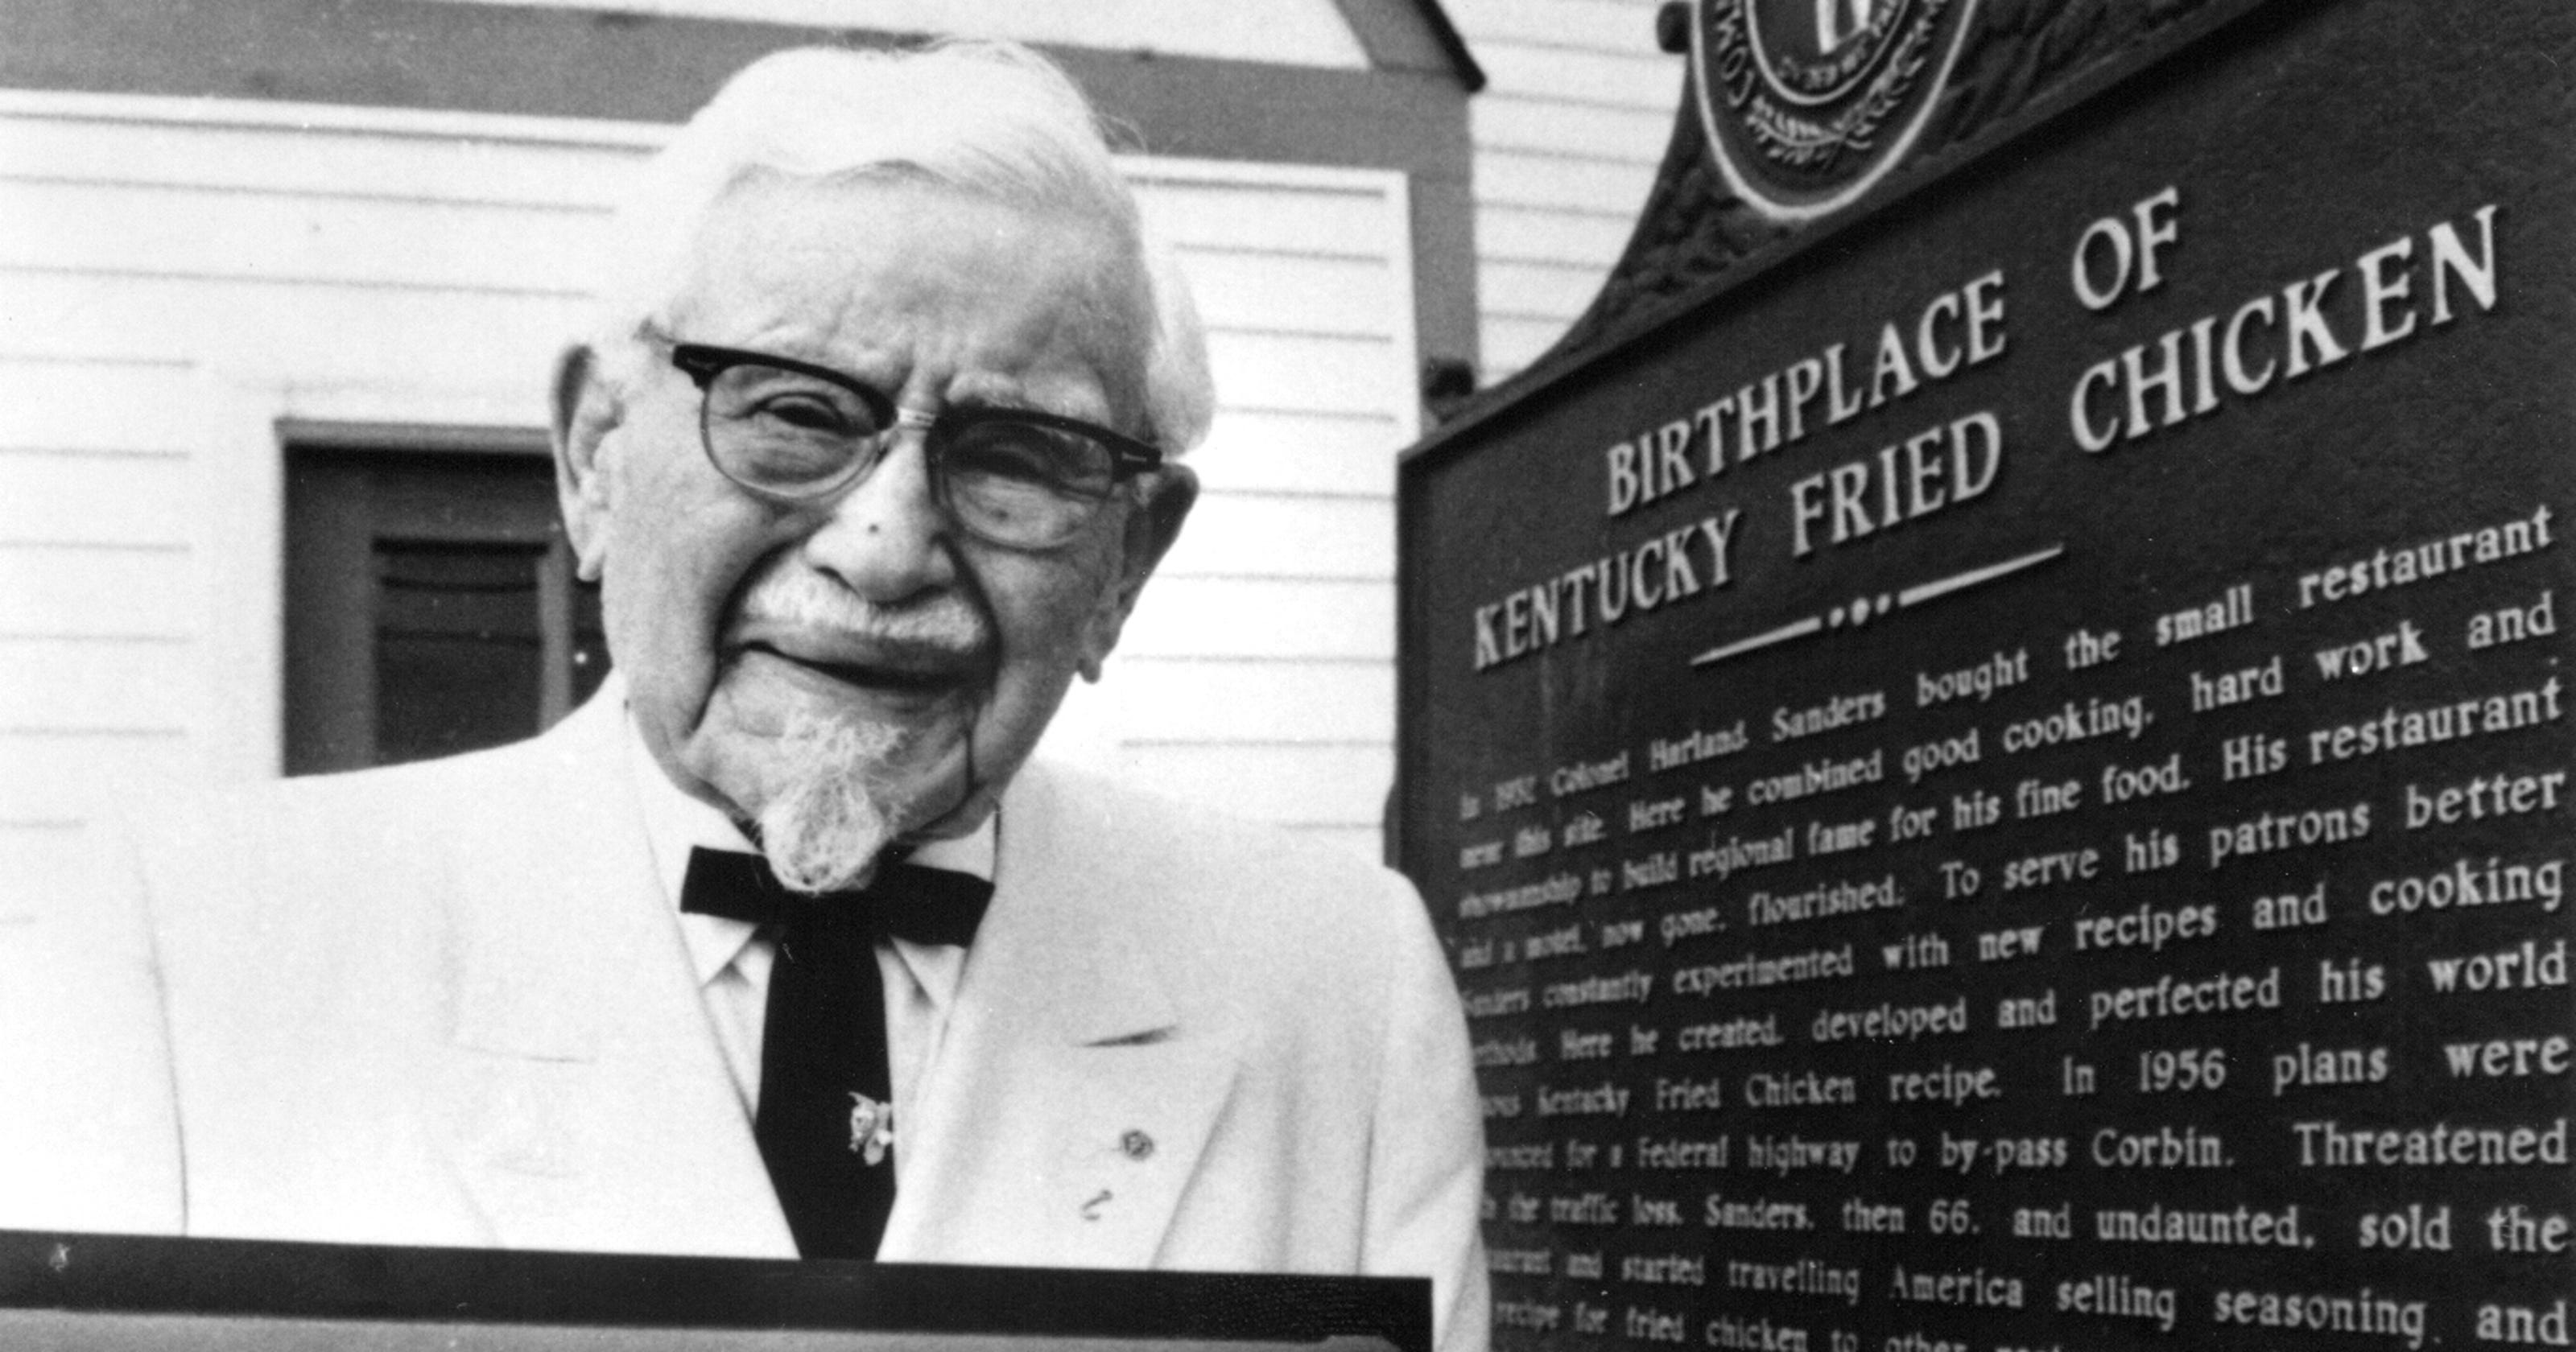 Top 25 Quotes By Colonel Sanders: Papa John's N-word Scandal: Was KFC's Colonel Sanders Racist?